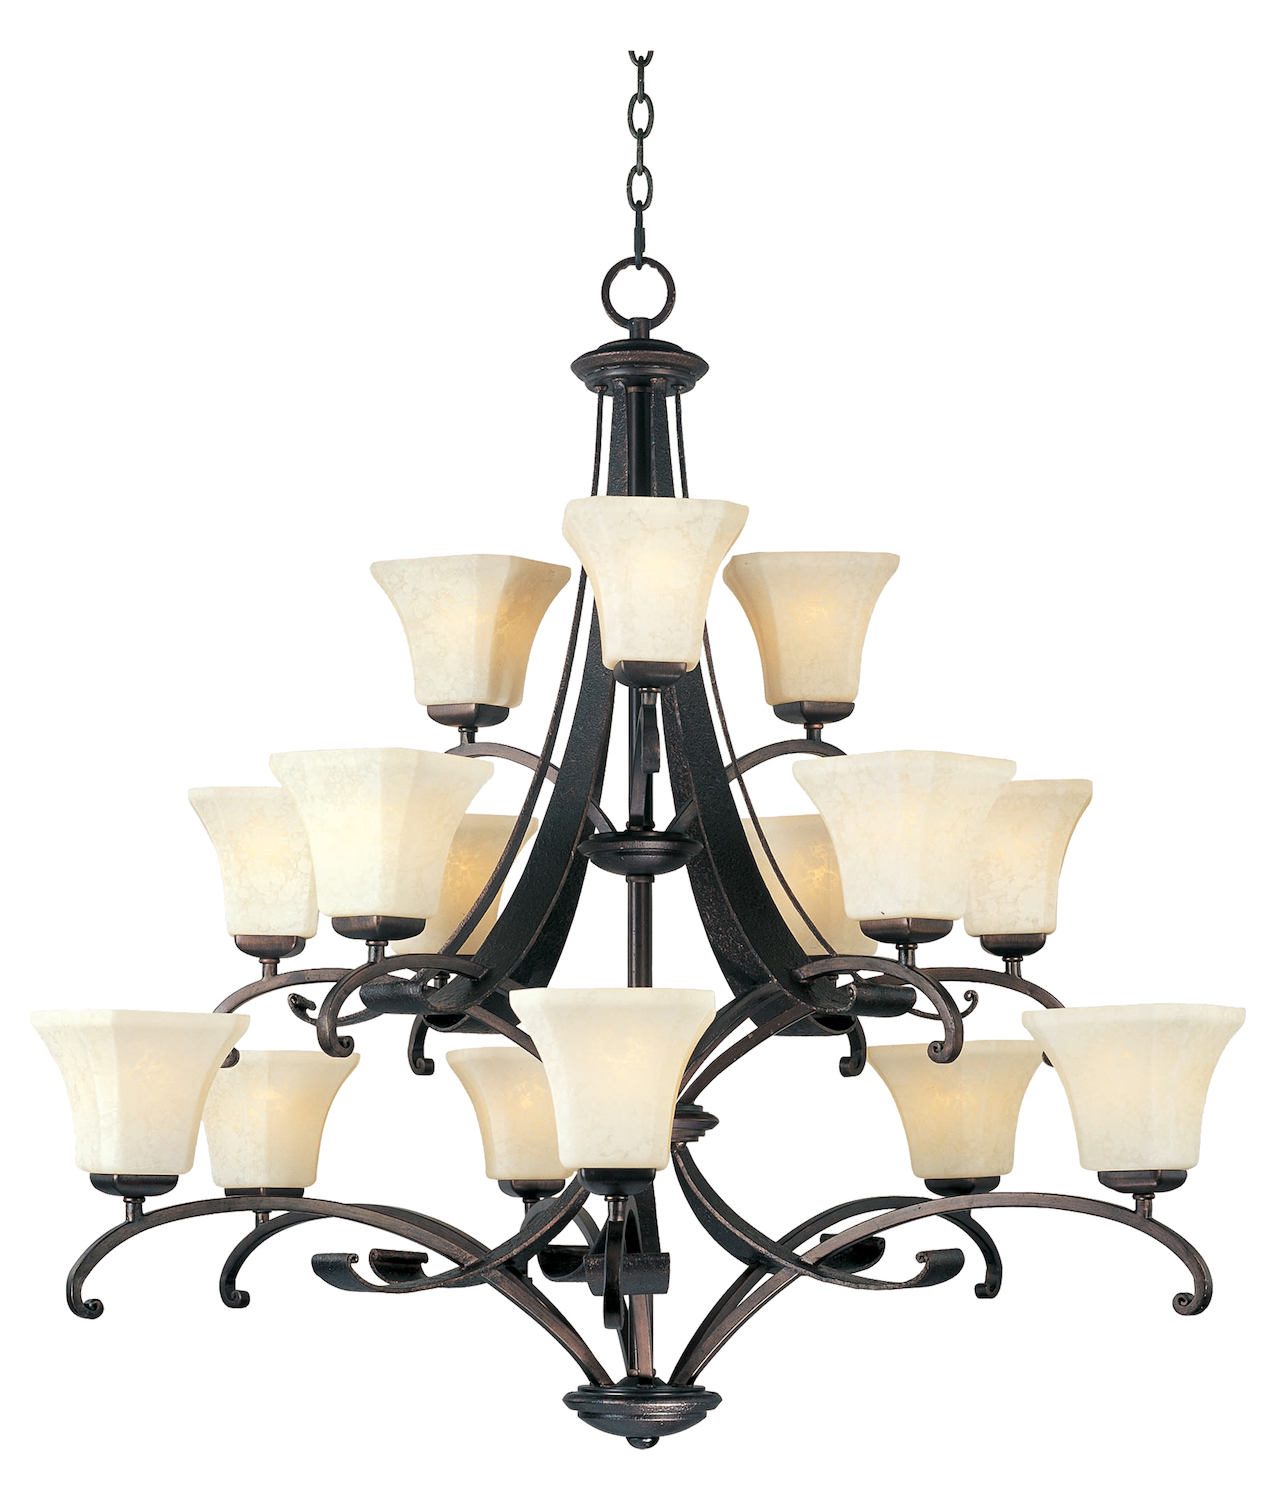 Maxim Fifteen Light Frost Lichen Glass Rustic Burnished Up Chandelier